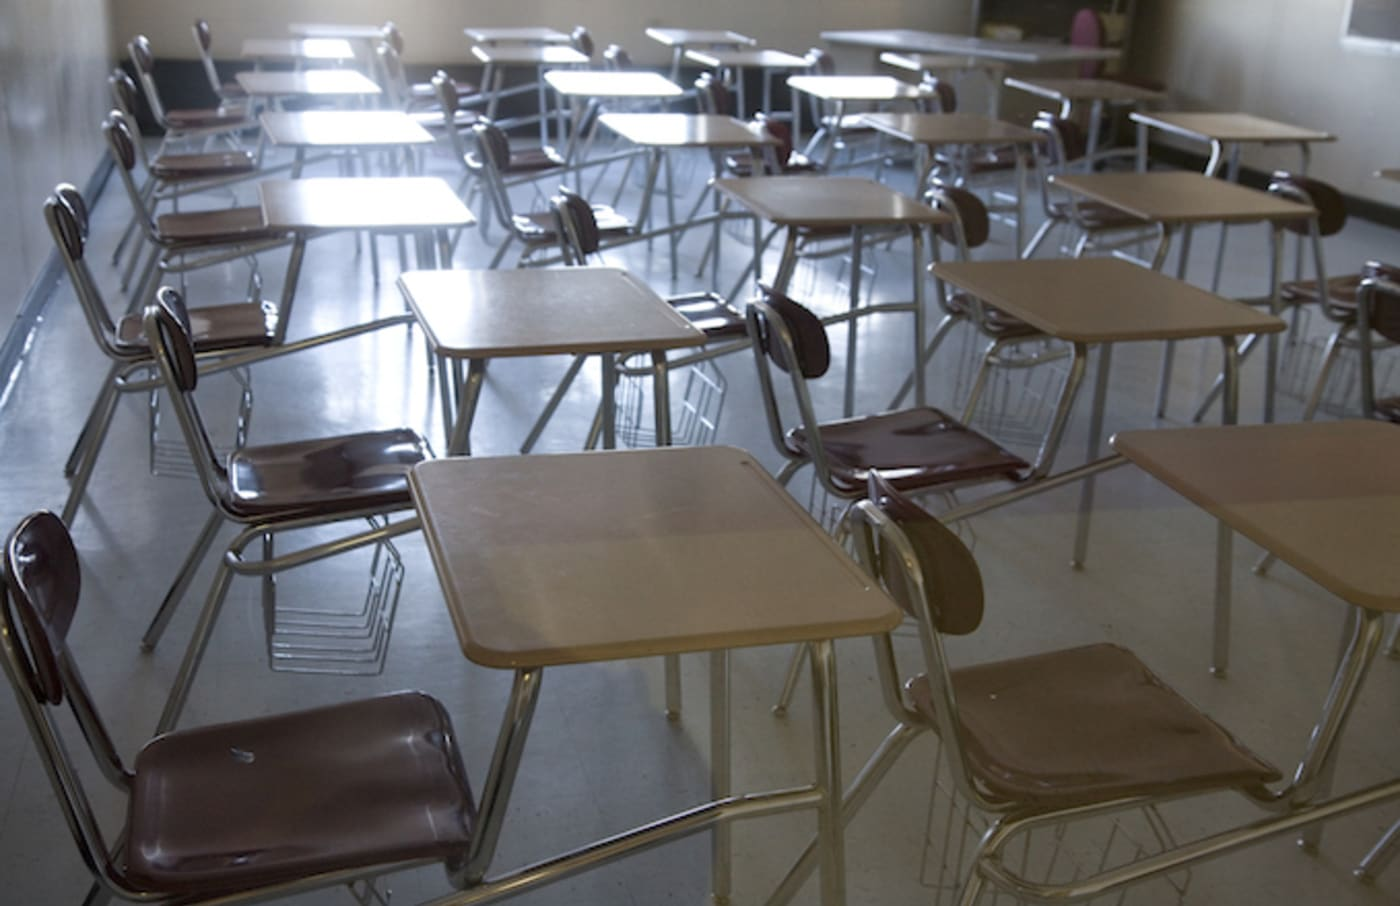 Empty chairs and desks in a high school classroom.